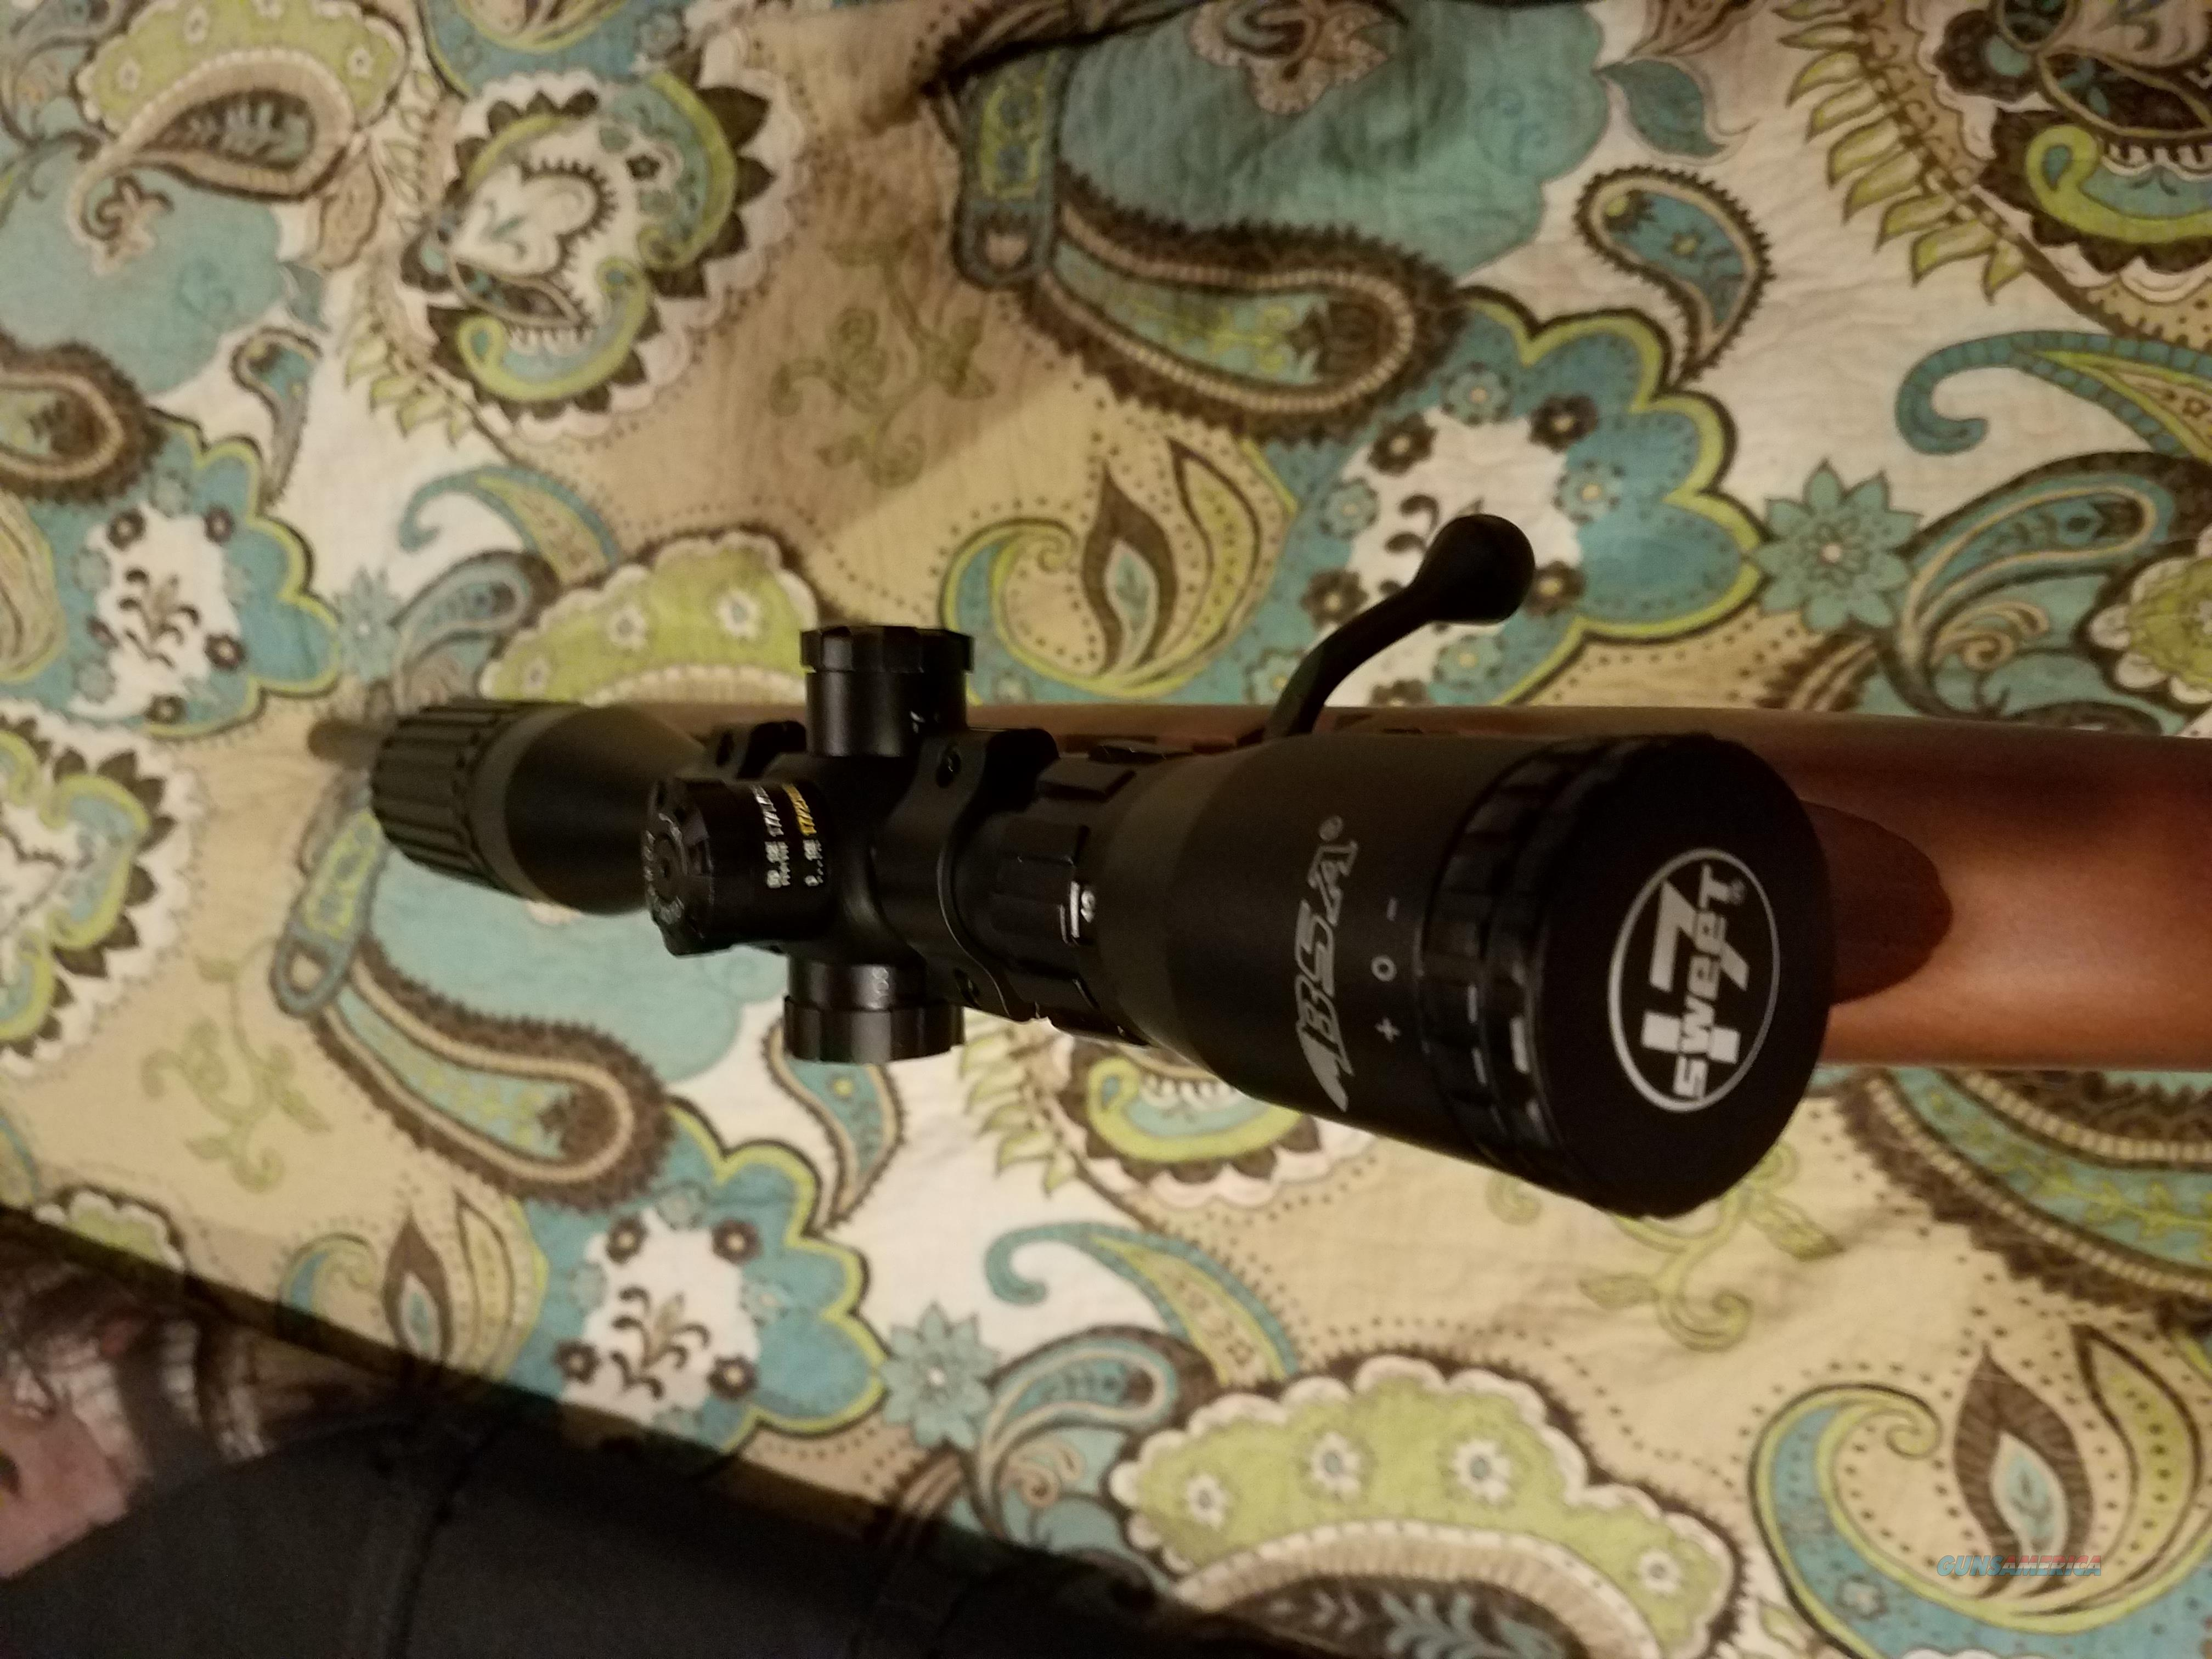 Marlin Xt 17v With Scope And Extras For Sale